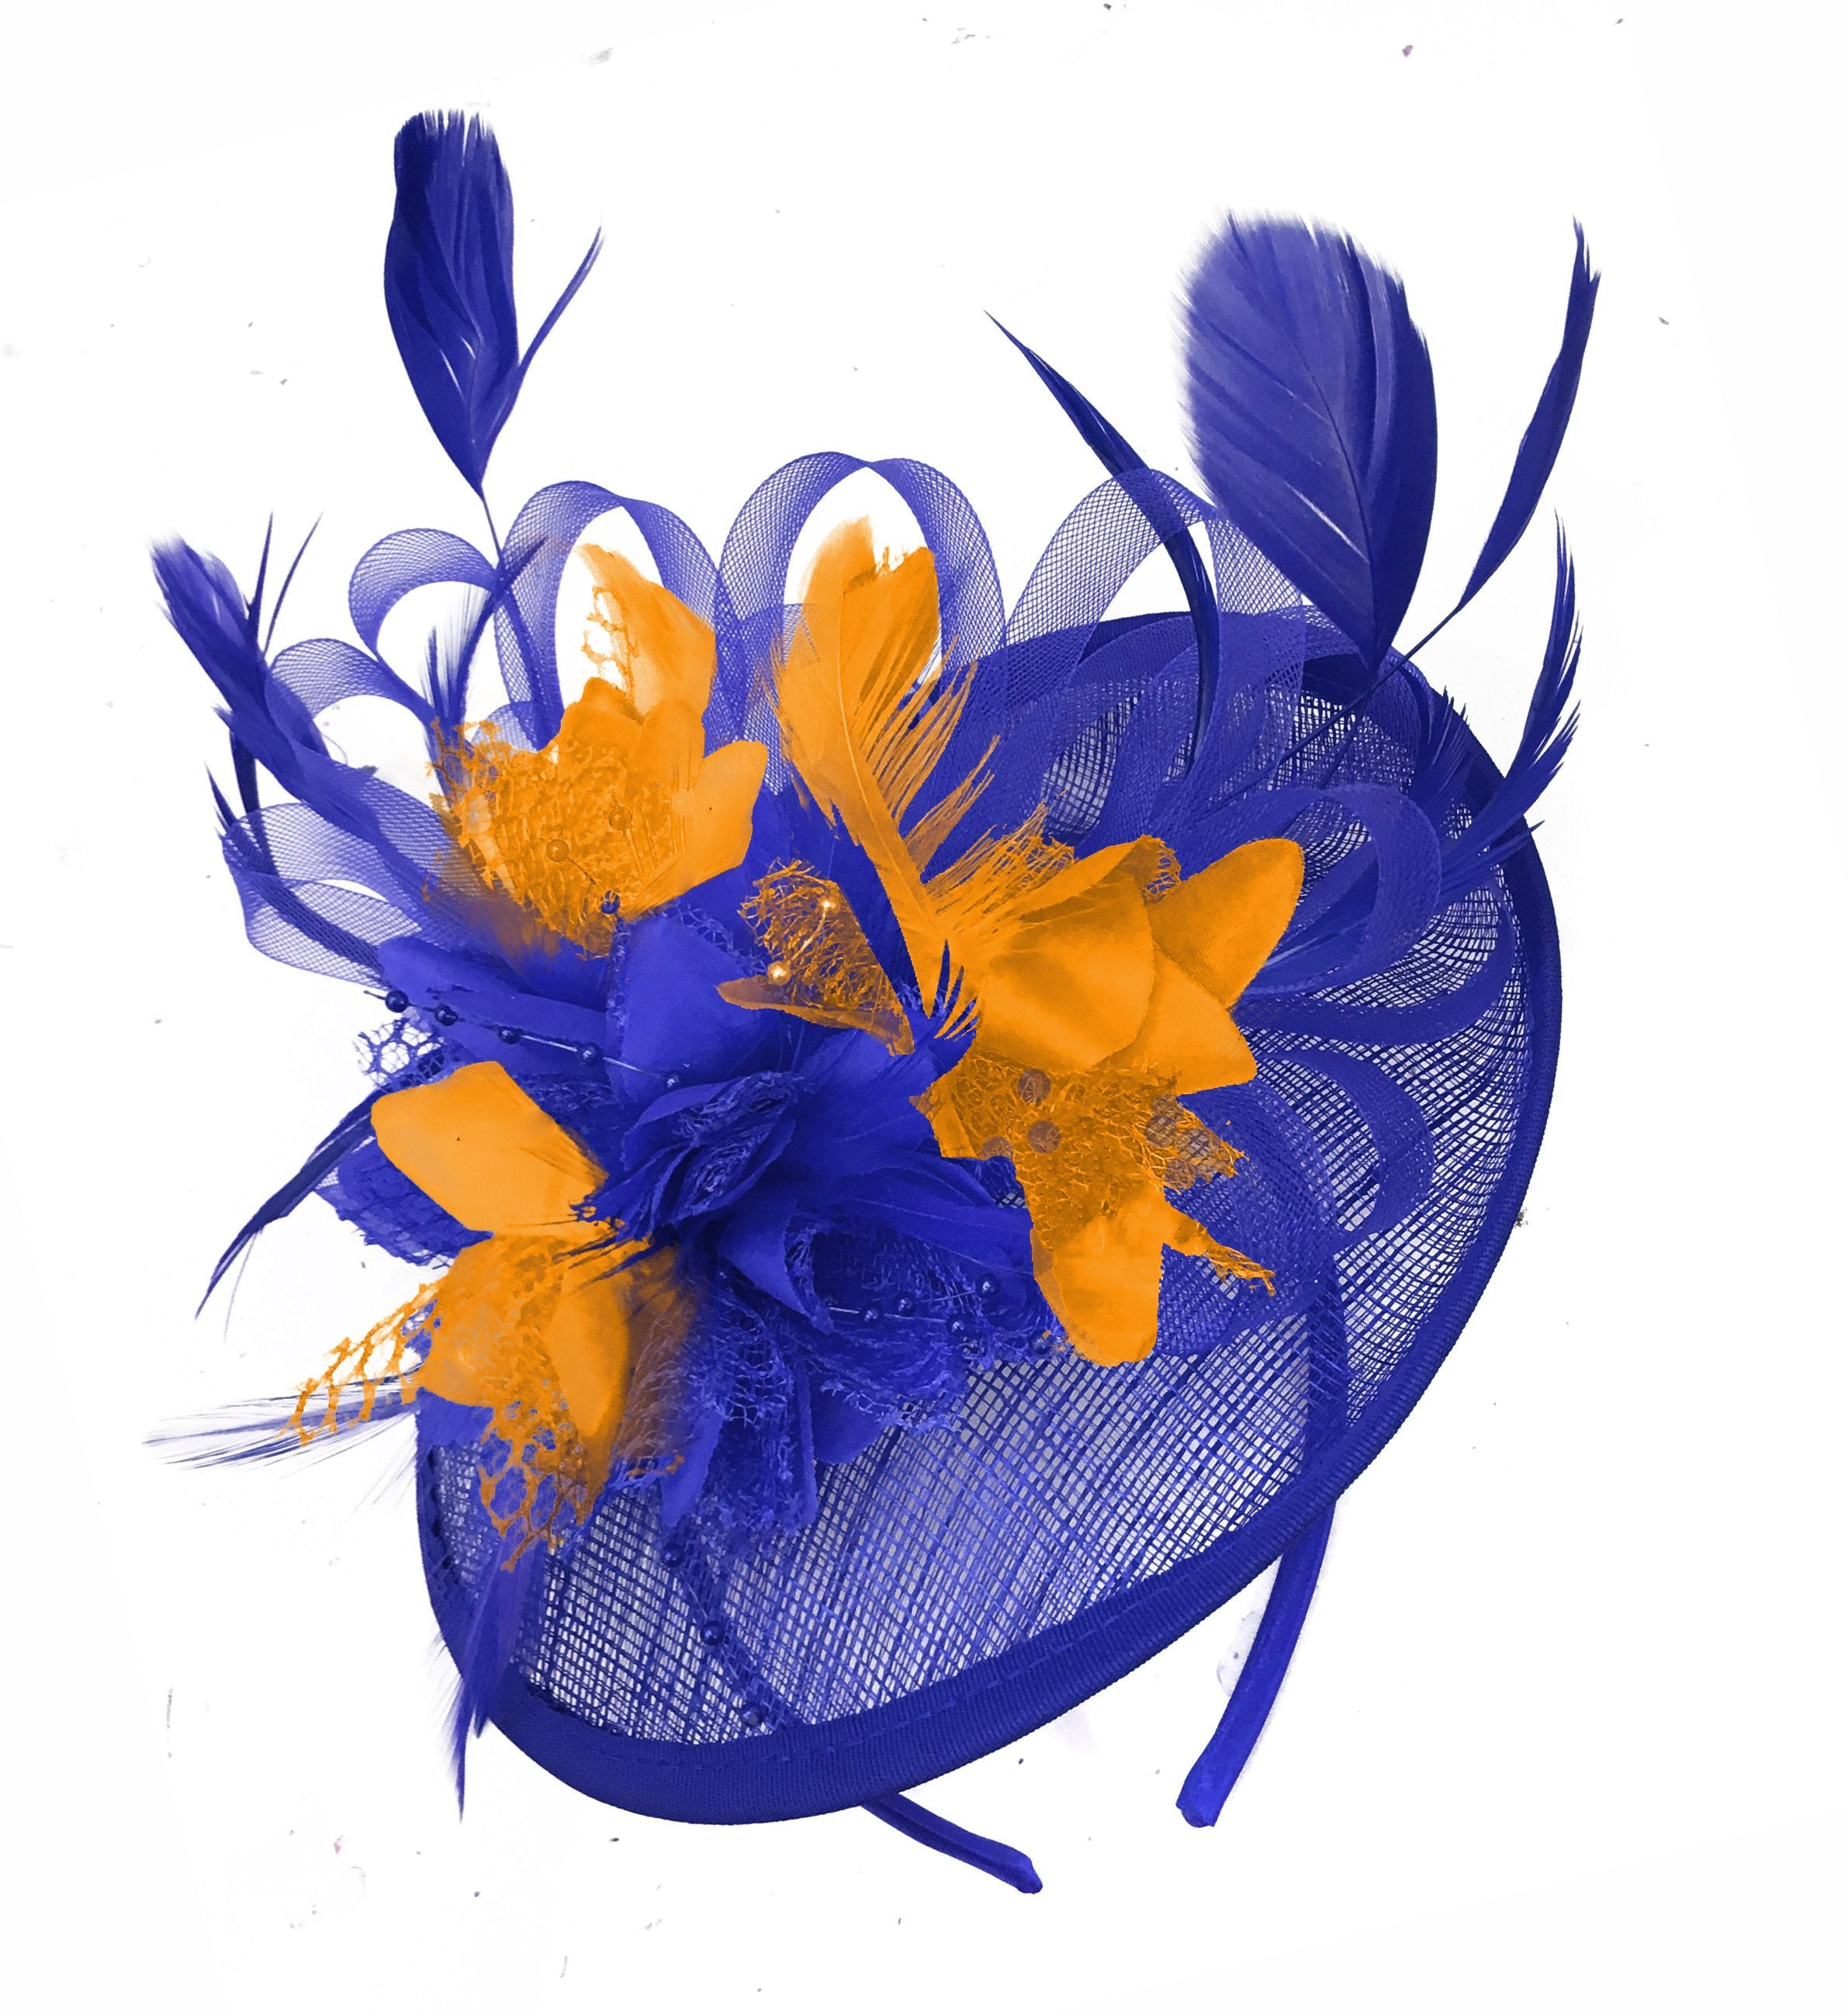 Caprilite Blue and Orange Sinamay Disc Saucer Fascinator Hat for Women Weddings Headband